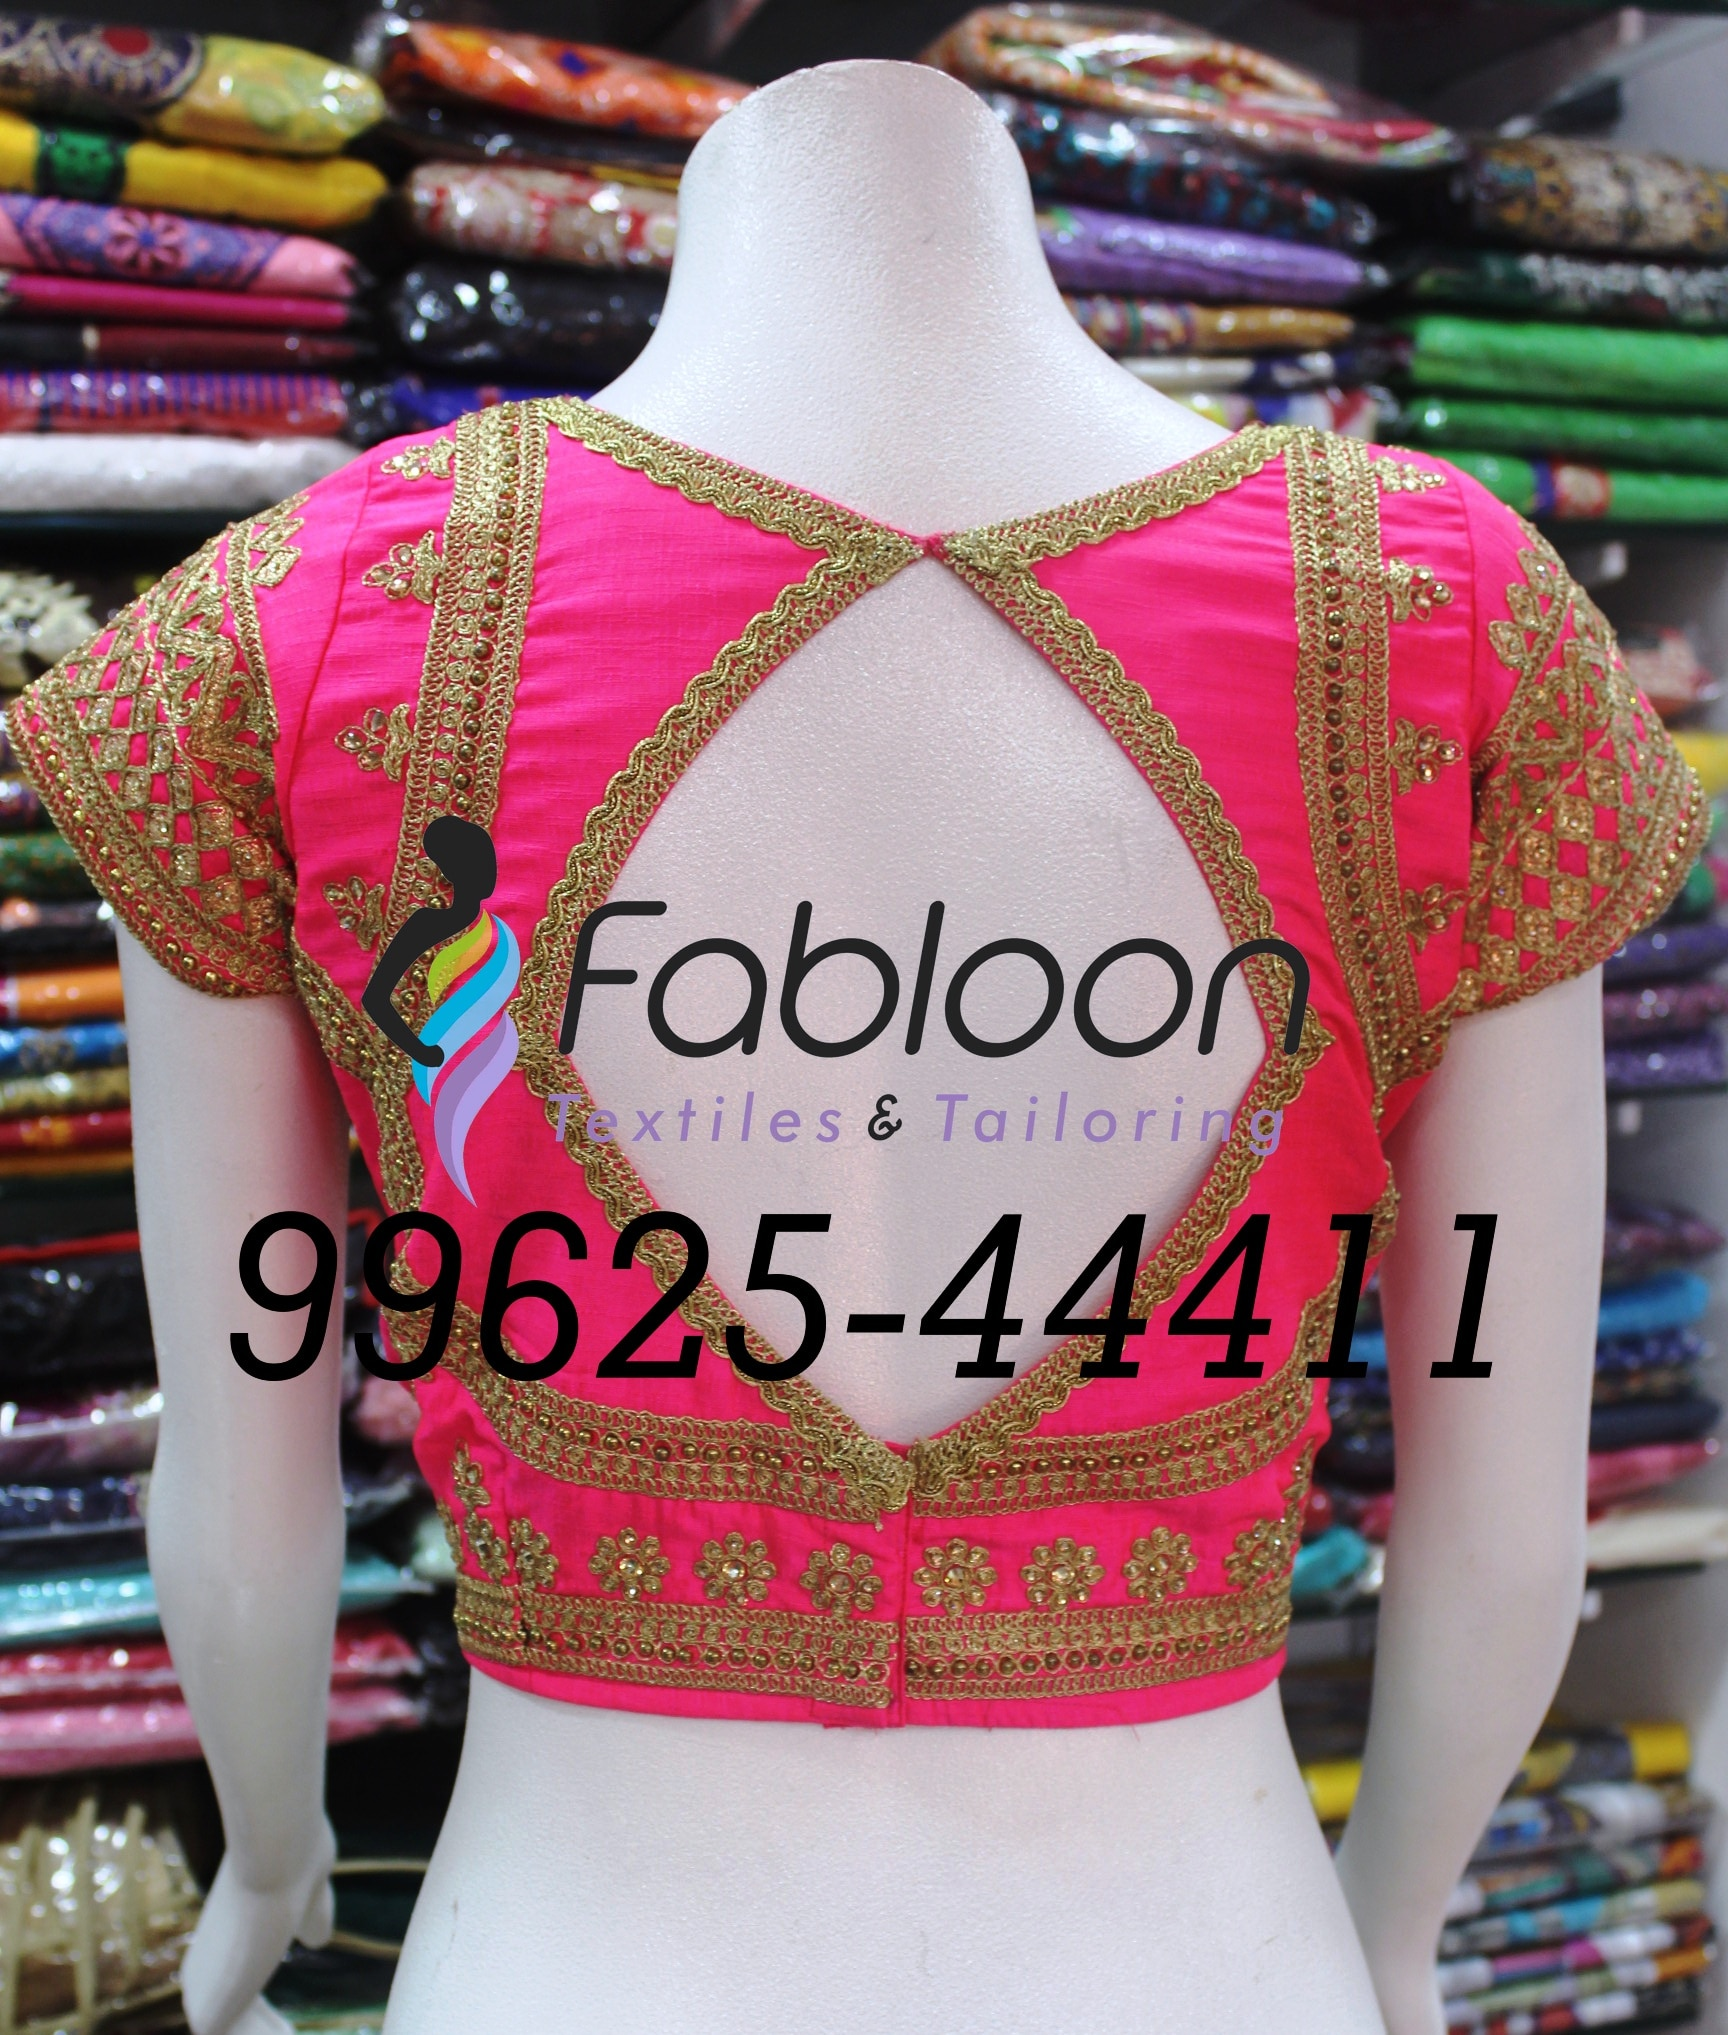 Wedding Blouse Tailors In Chennai.  Wedding Designer Blouse Stitching At Fabloon Textile & Tailoring, Mob: +91 9962544411, 044 48644411.  Indian bride looks stunning with very beautiful designer blouse made by our Showroom Tailors. If you don't find the unique and different design of blouse by your own, there are ways through which you can create beautiful blouse without breaking your brain. Our Showroom of Fabloon dealing with fashion design will make you to get the amazing designs of blouse design that matches with your saree that you are going to wear during the Celebration. We help you find some of the beautiful blouse designs that will make you look stunning on the day of wedding celebration.